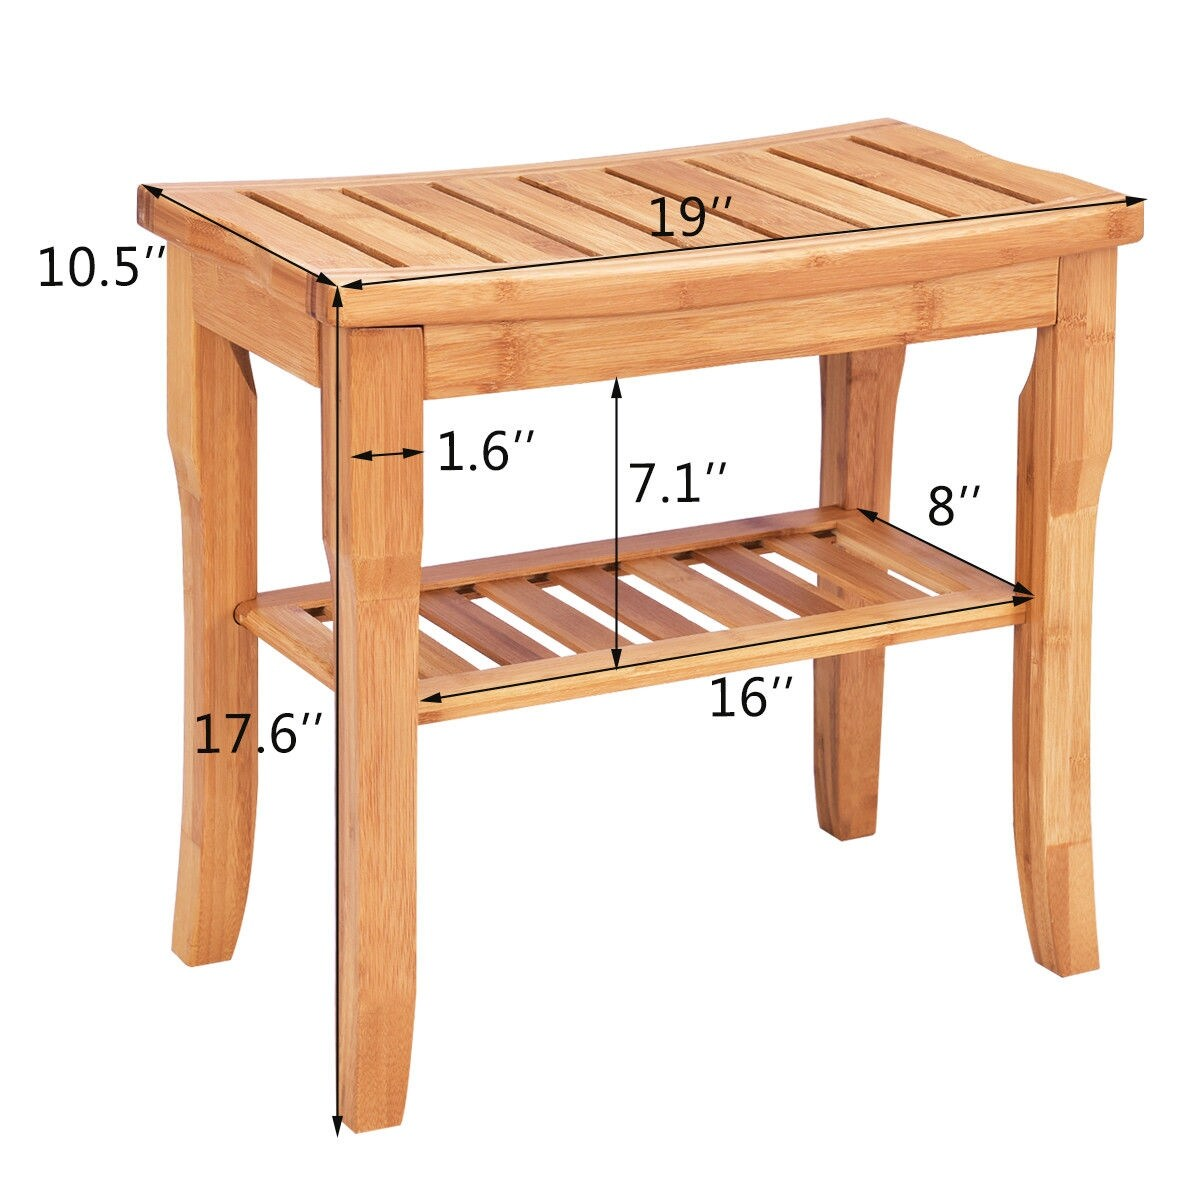 Costway Bamboo Shower Seat Bench